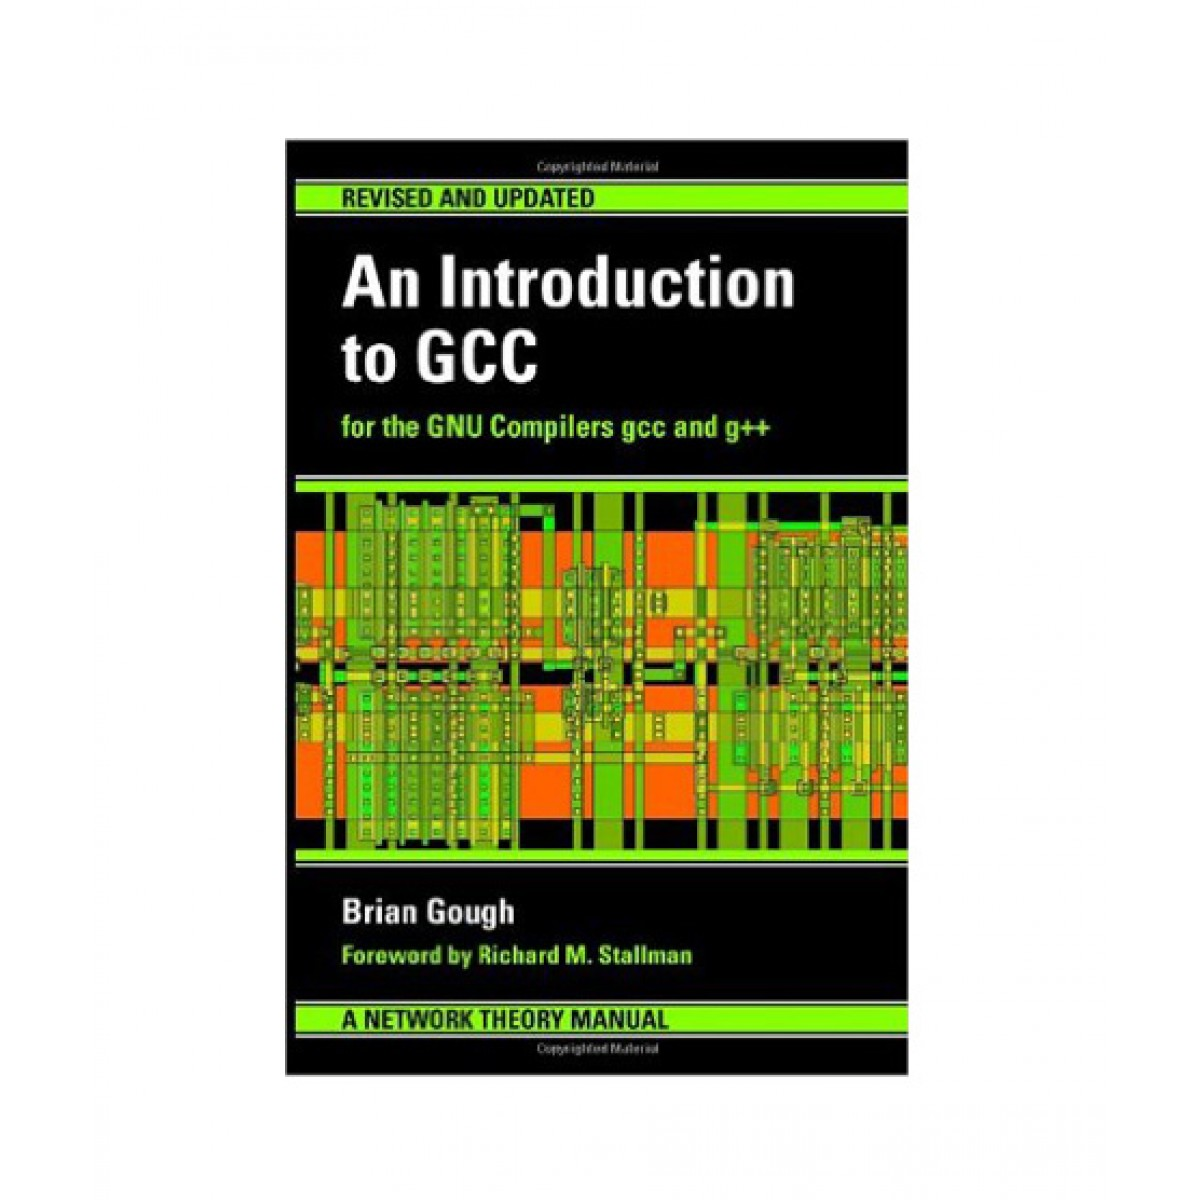 An Introduction to GCC Book